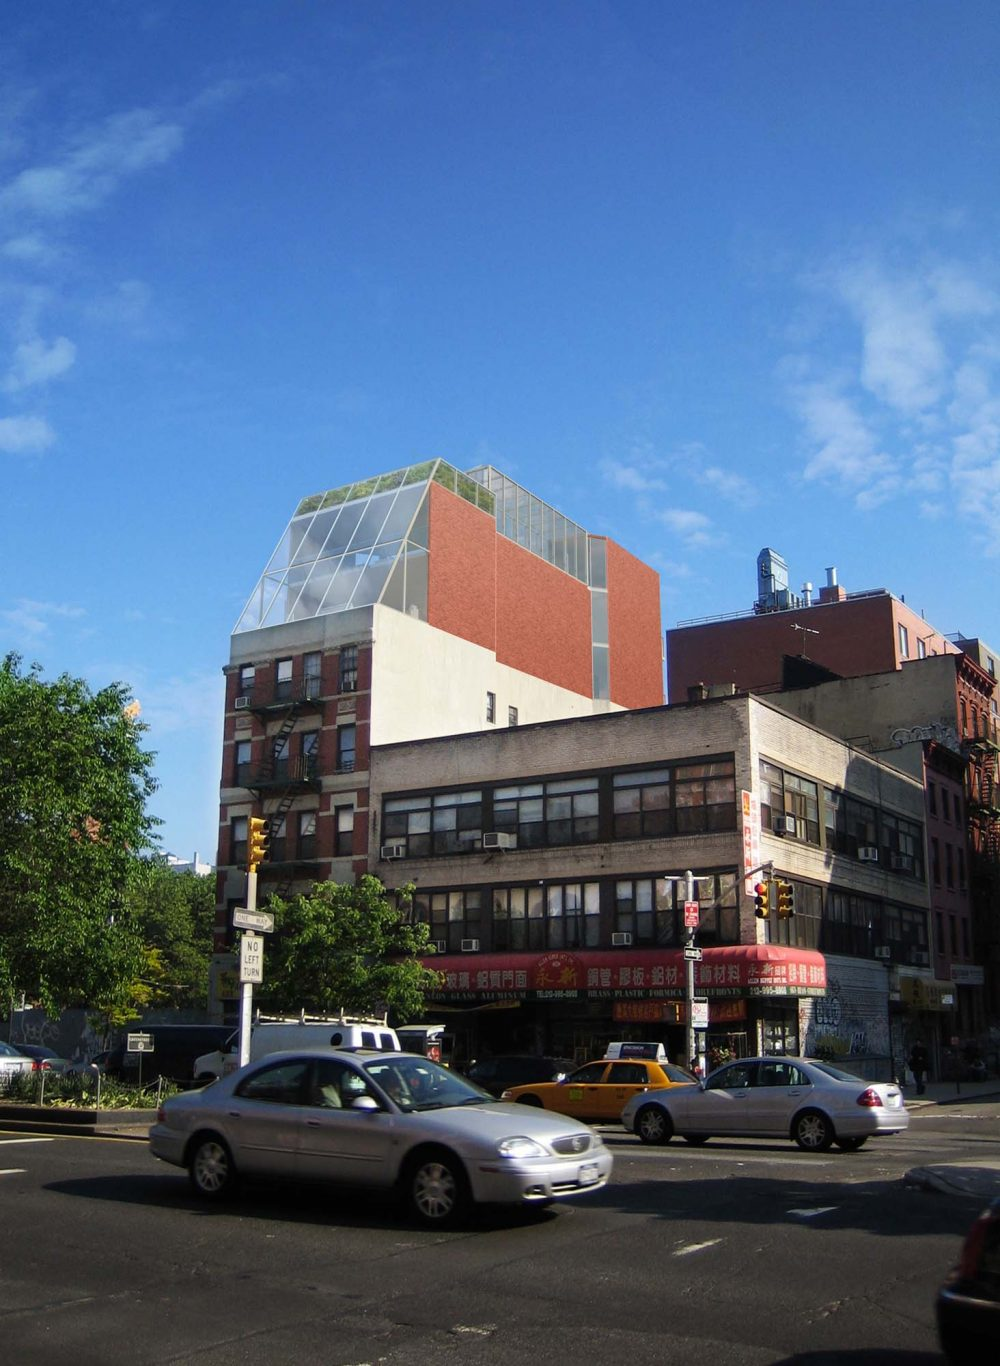 A rendering of the proposed addition to the existing building viewed from Delancey Street